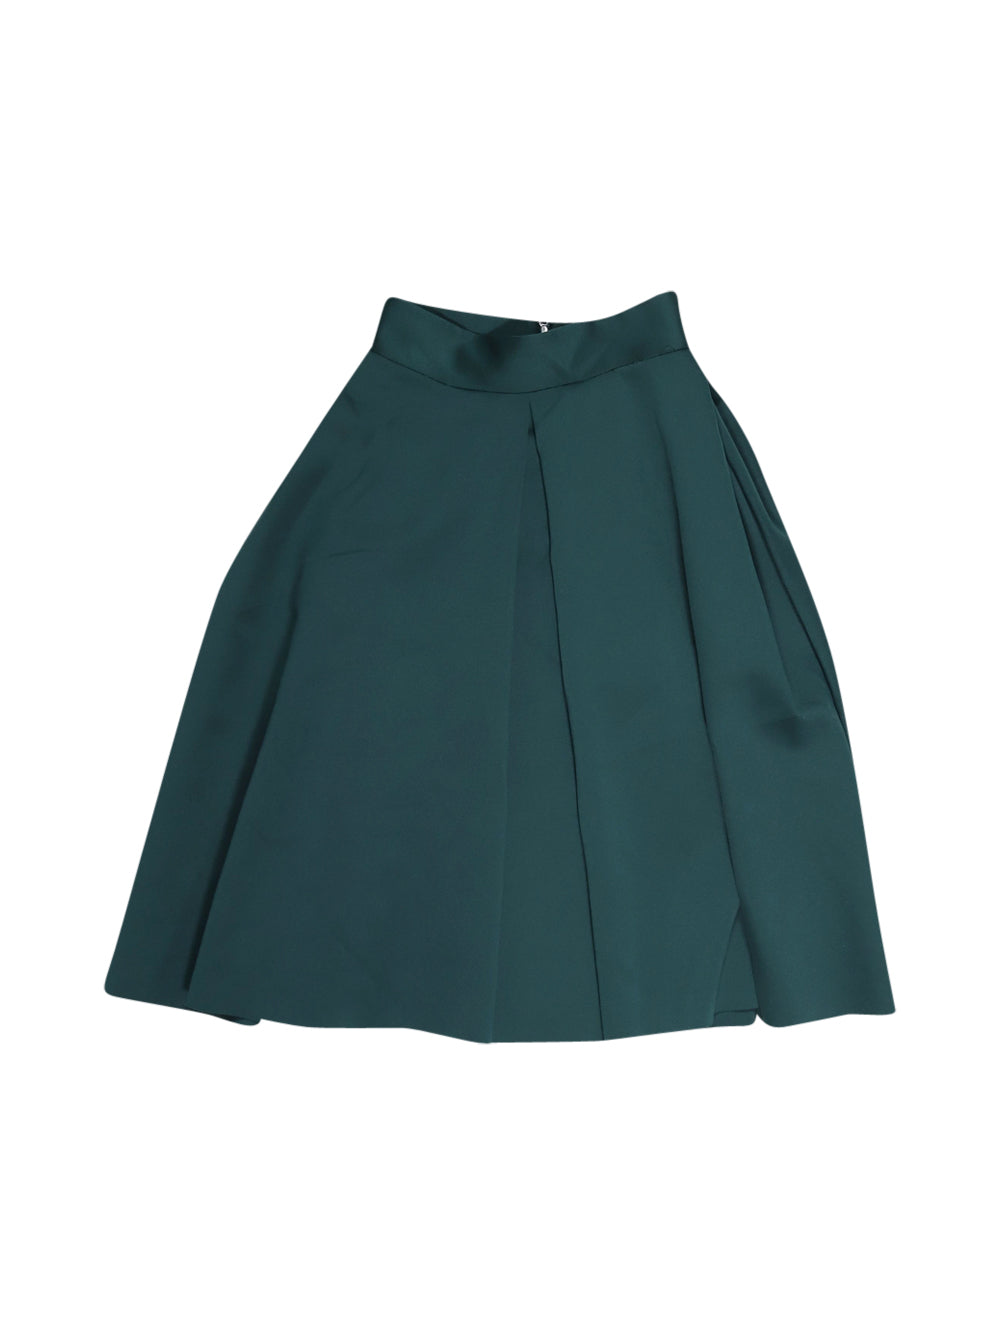 Front photo of Preloved Asos Green Woman's skirt - size 6/XS